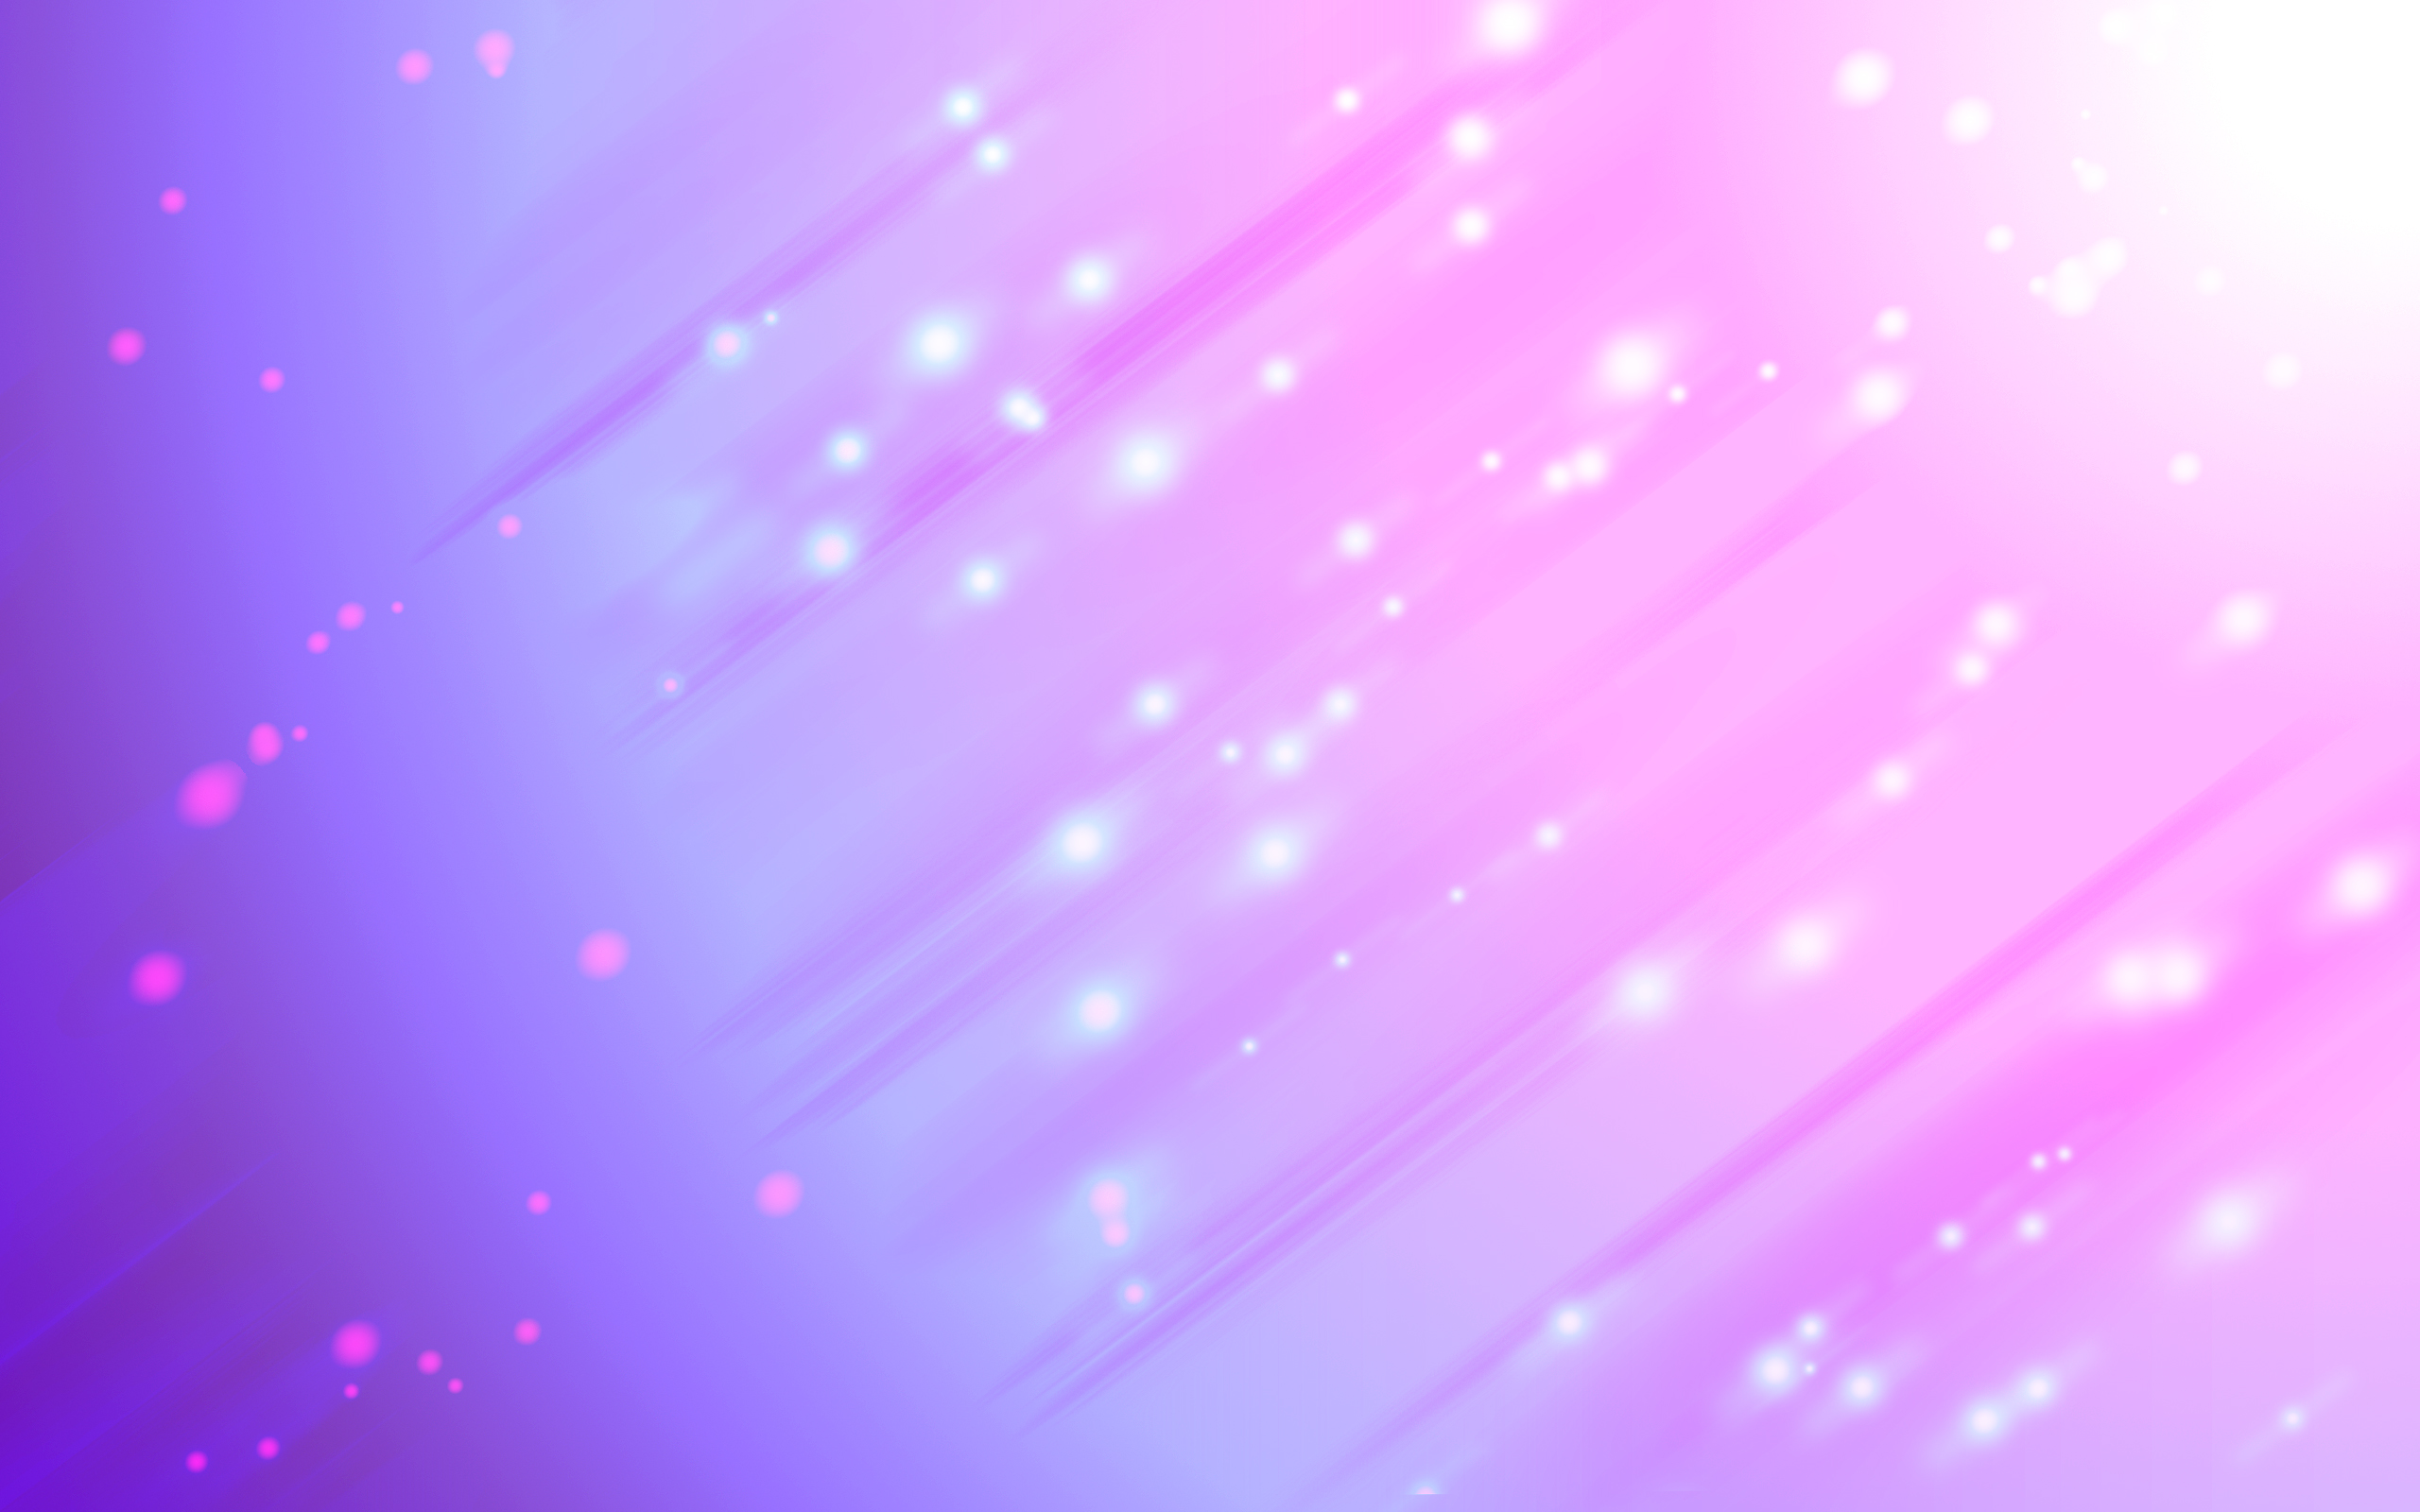 Light Pink Background Designs Background 1 HD Wallpapers